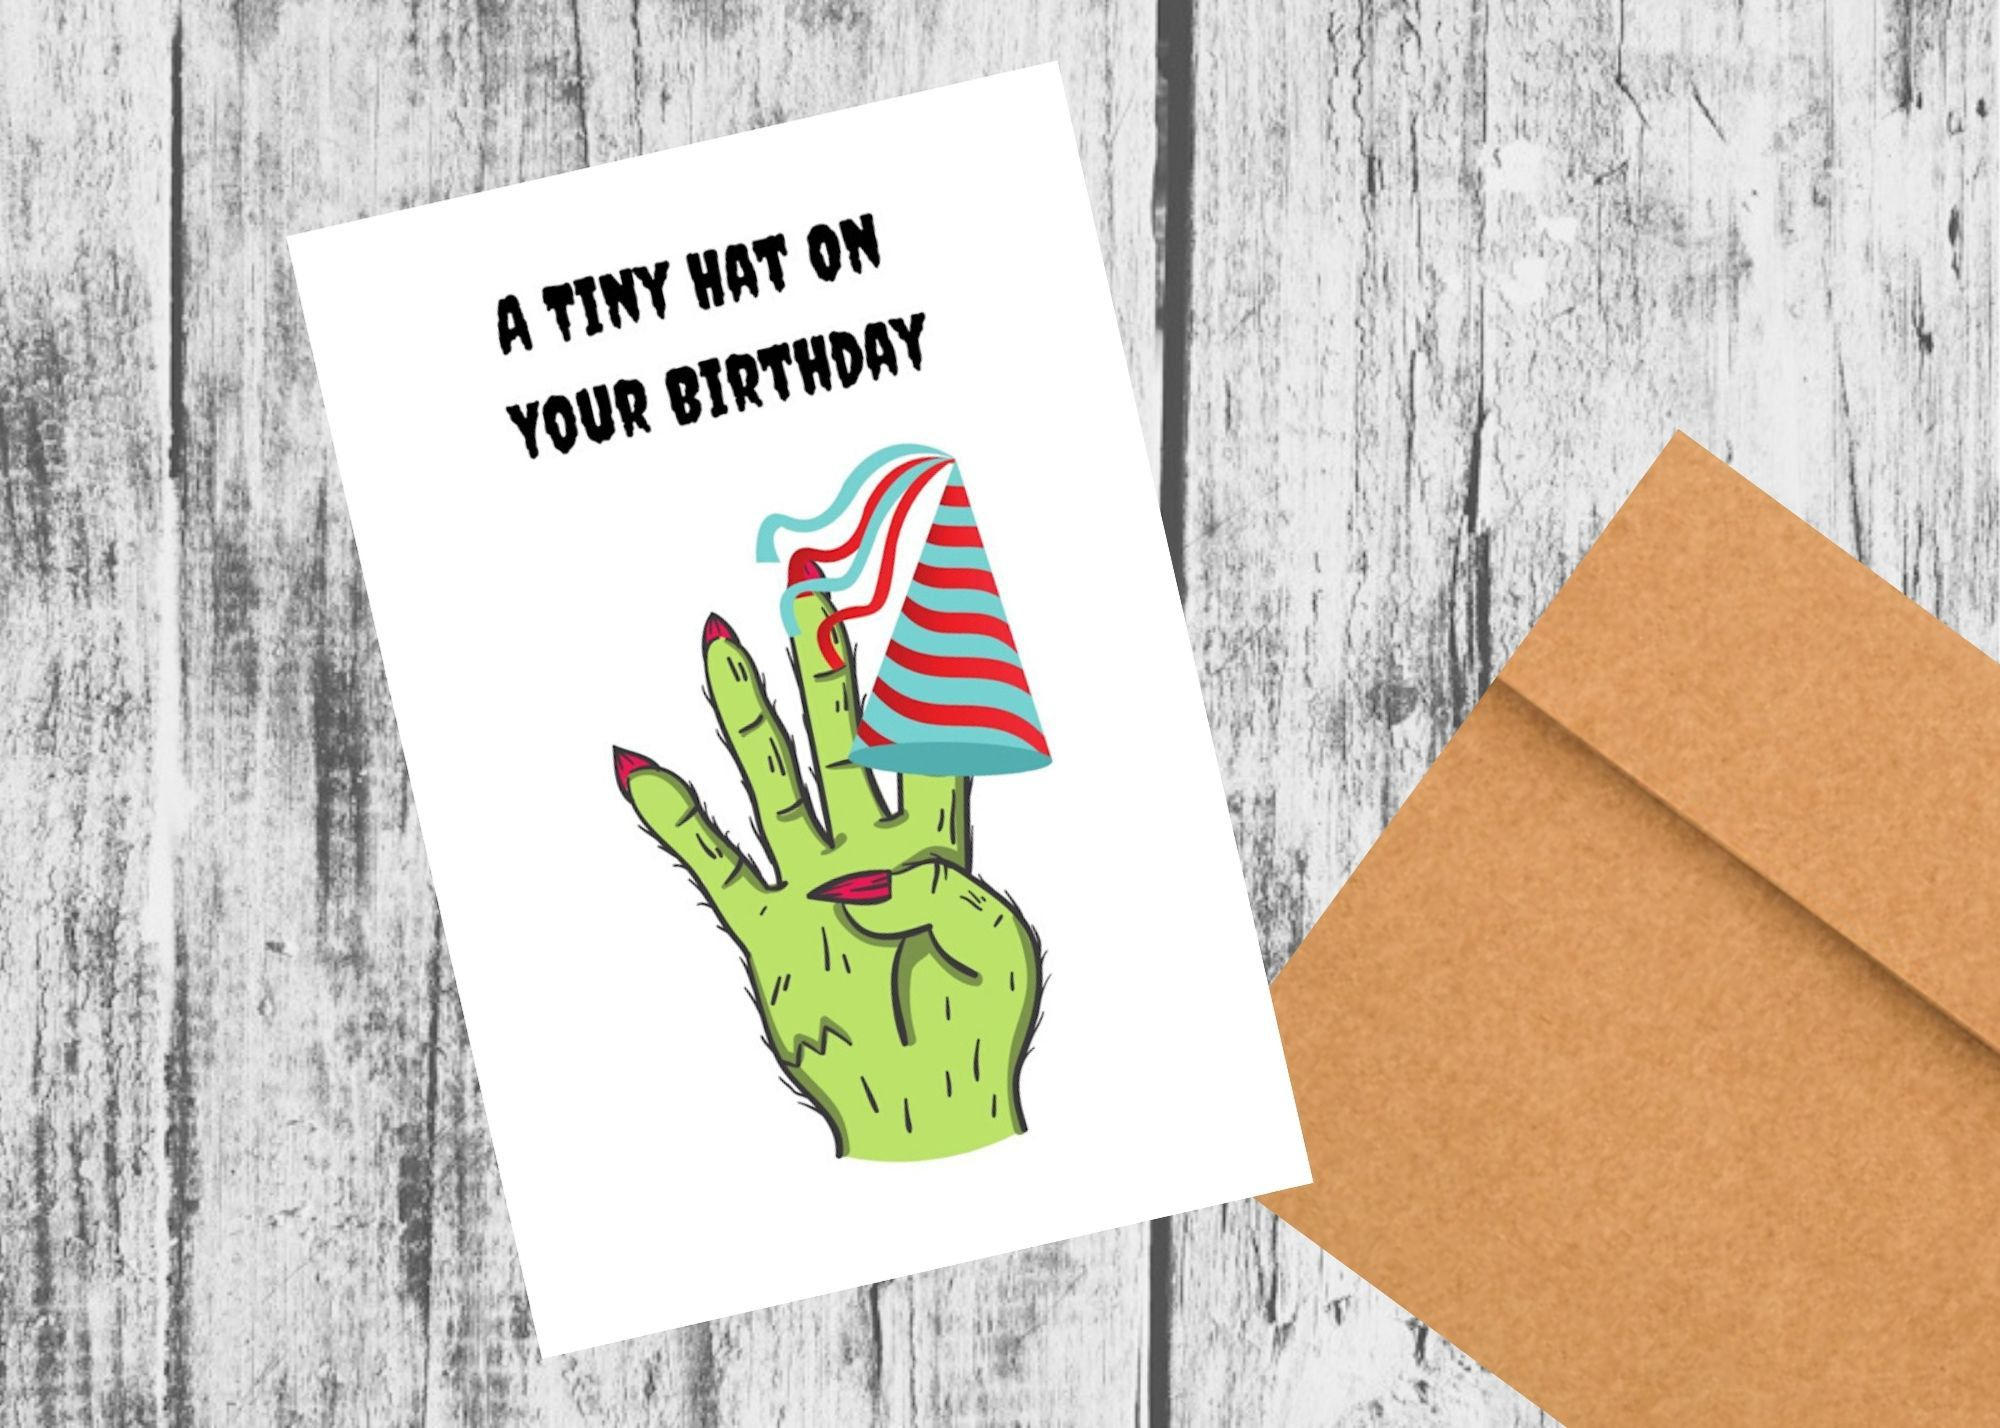 Zombie Birthday Card Walking Dead Zombie Card Funny Friendship Birthday Card Anniversary Cards For Husband Happy Retirement Cards Anniversary Greeting Cards